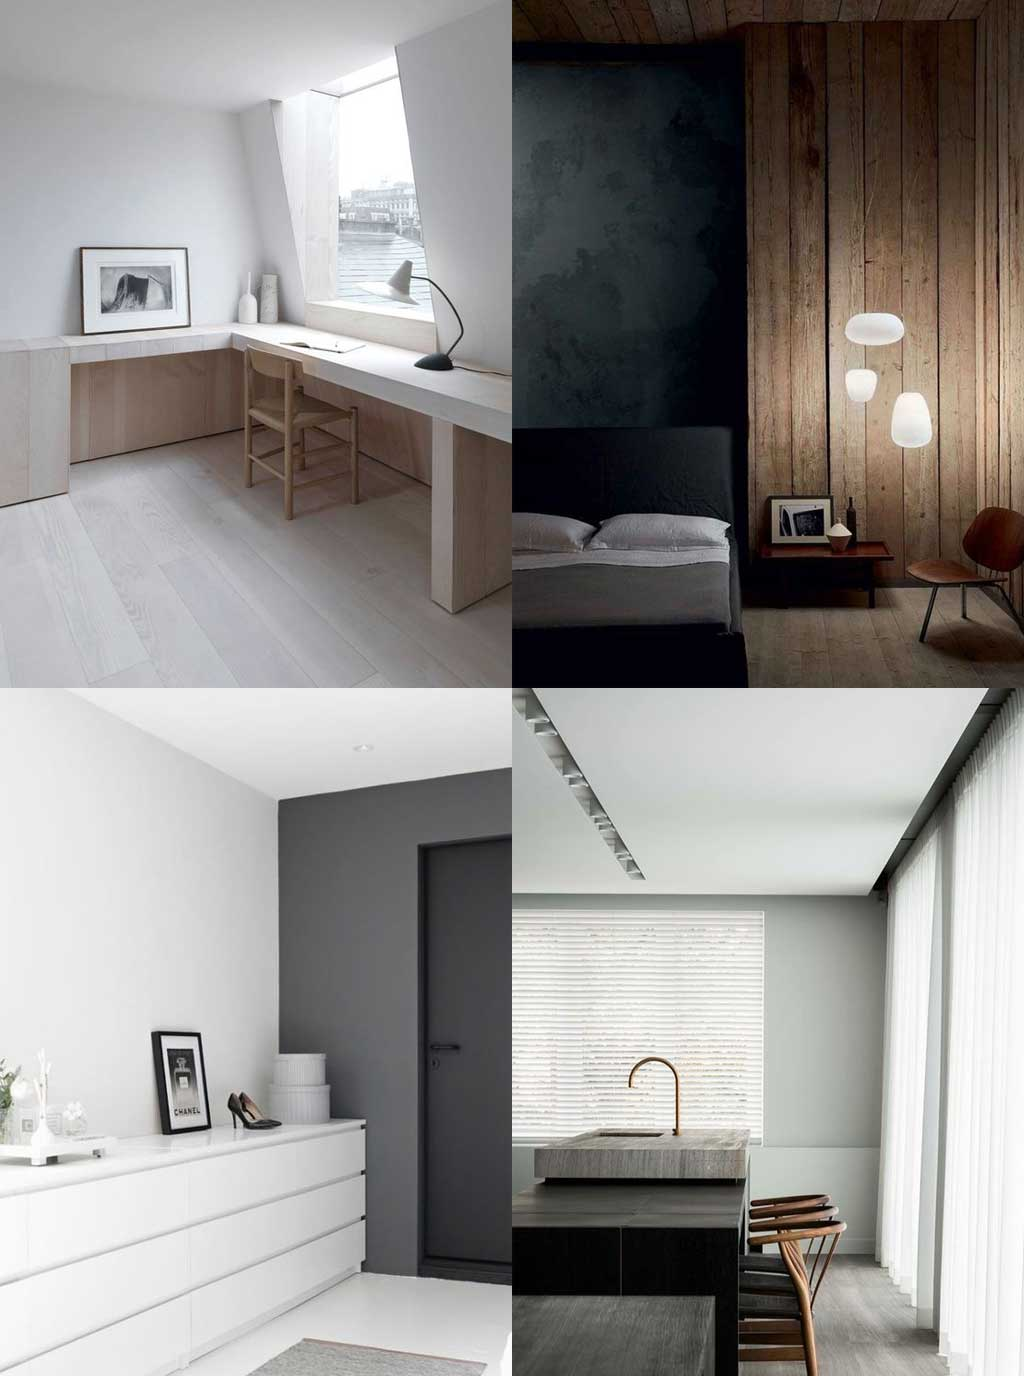 Negative Space In Interior Design The Power Of Nothing